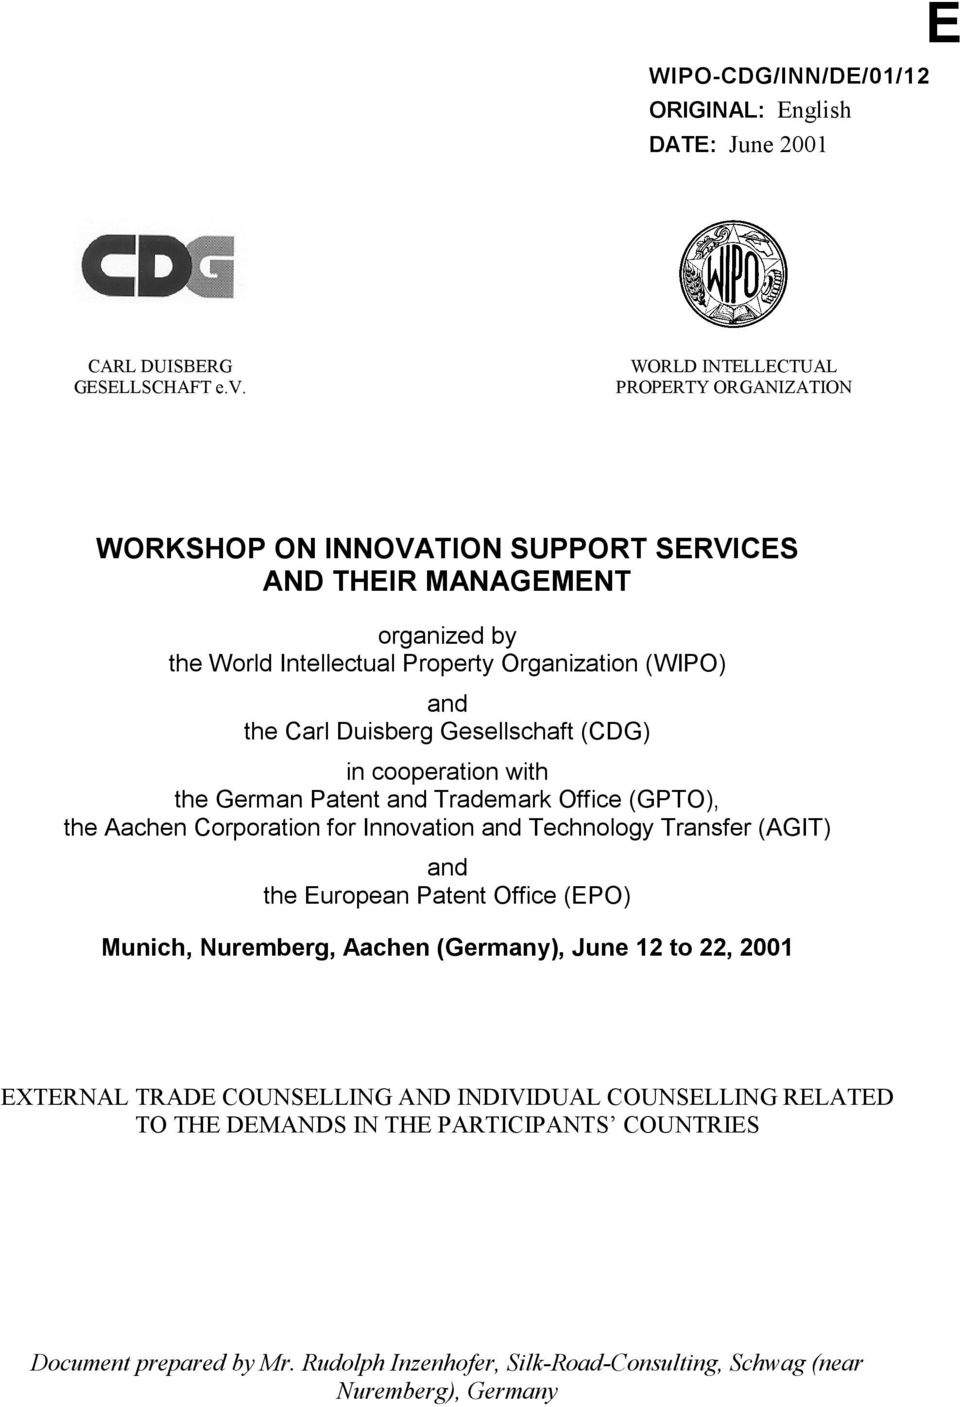 Carl Duisberg Gesellschaft (CDG) in cooperation with the German Patent and Trademark Office (GPTO), the Aachen Corporation for Innovation and Technology Transfer (AGIT) and the